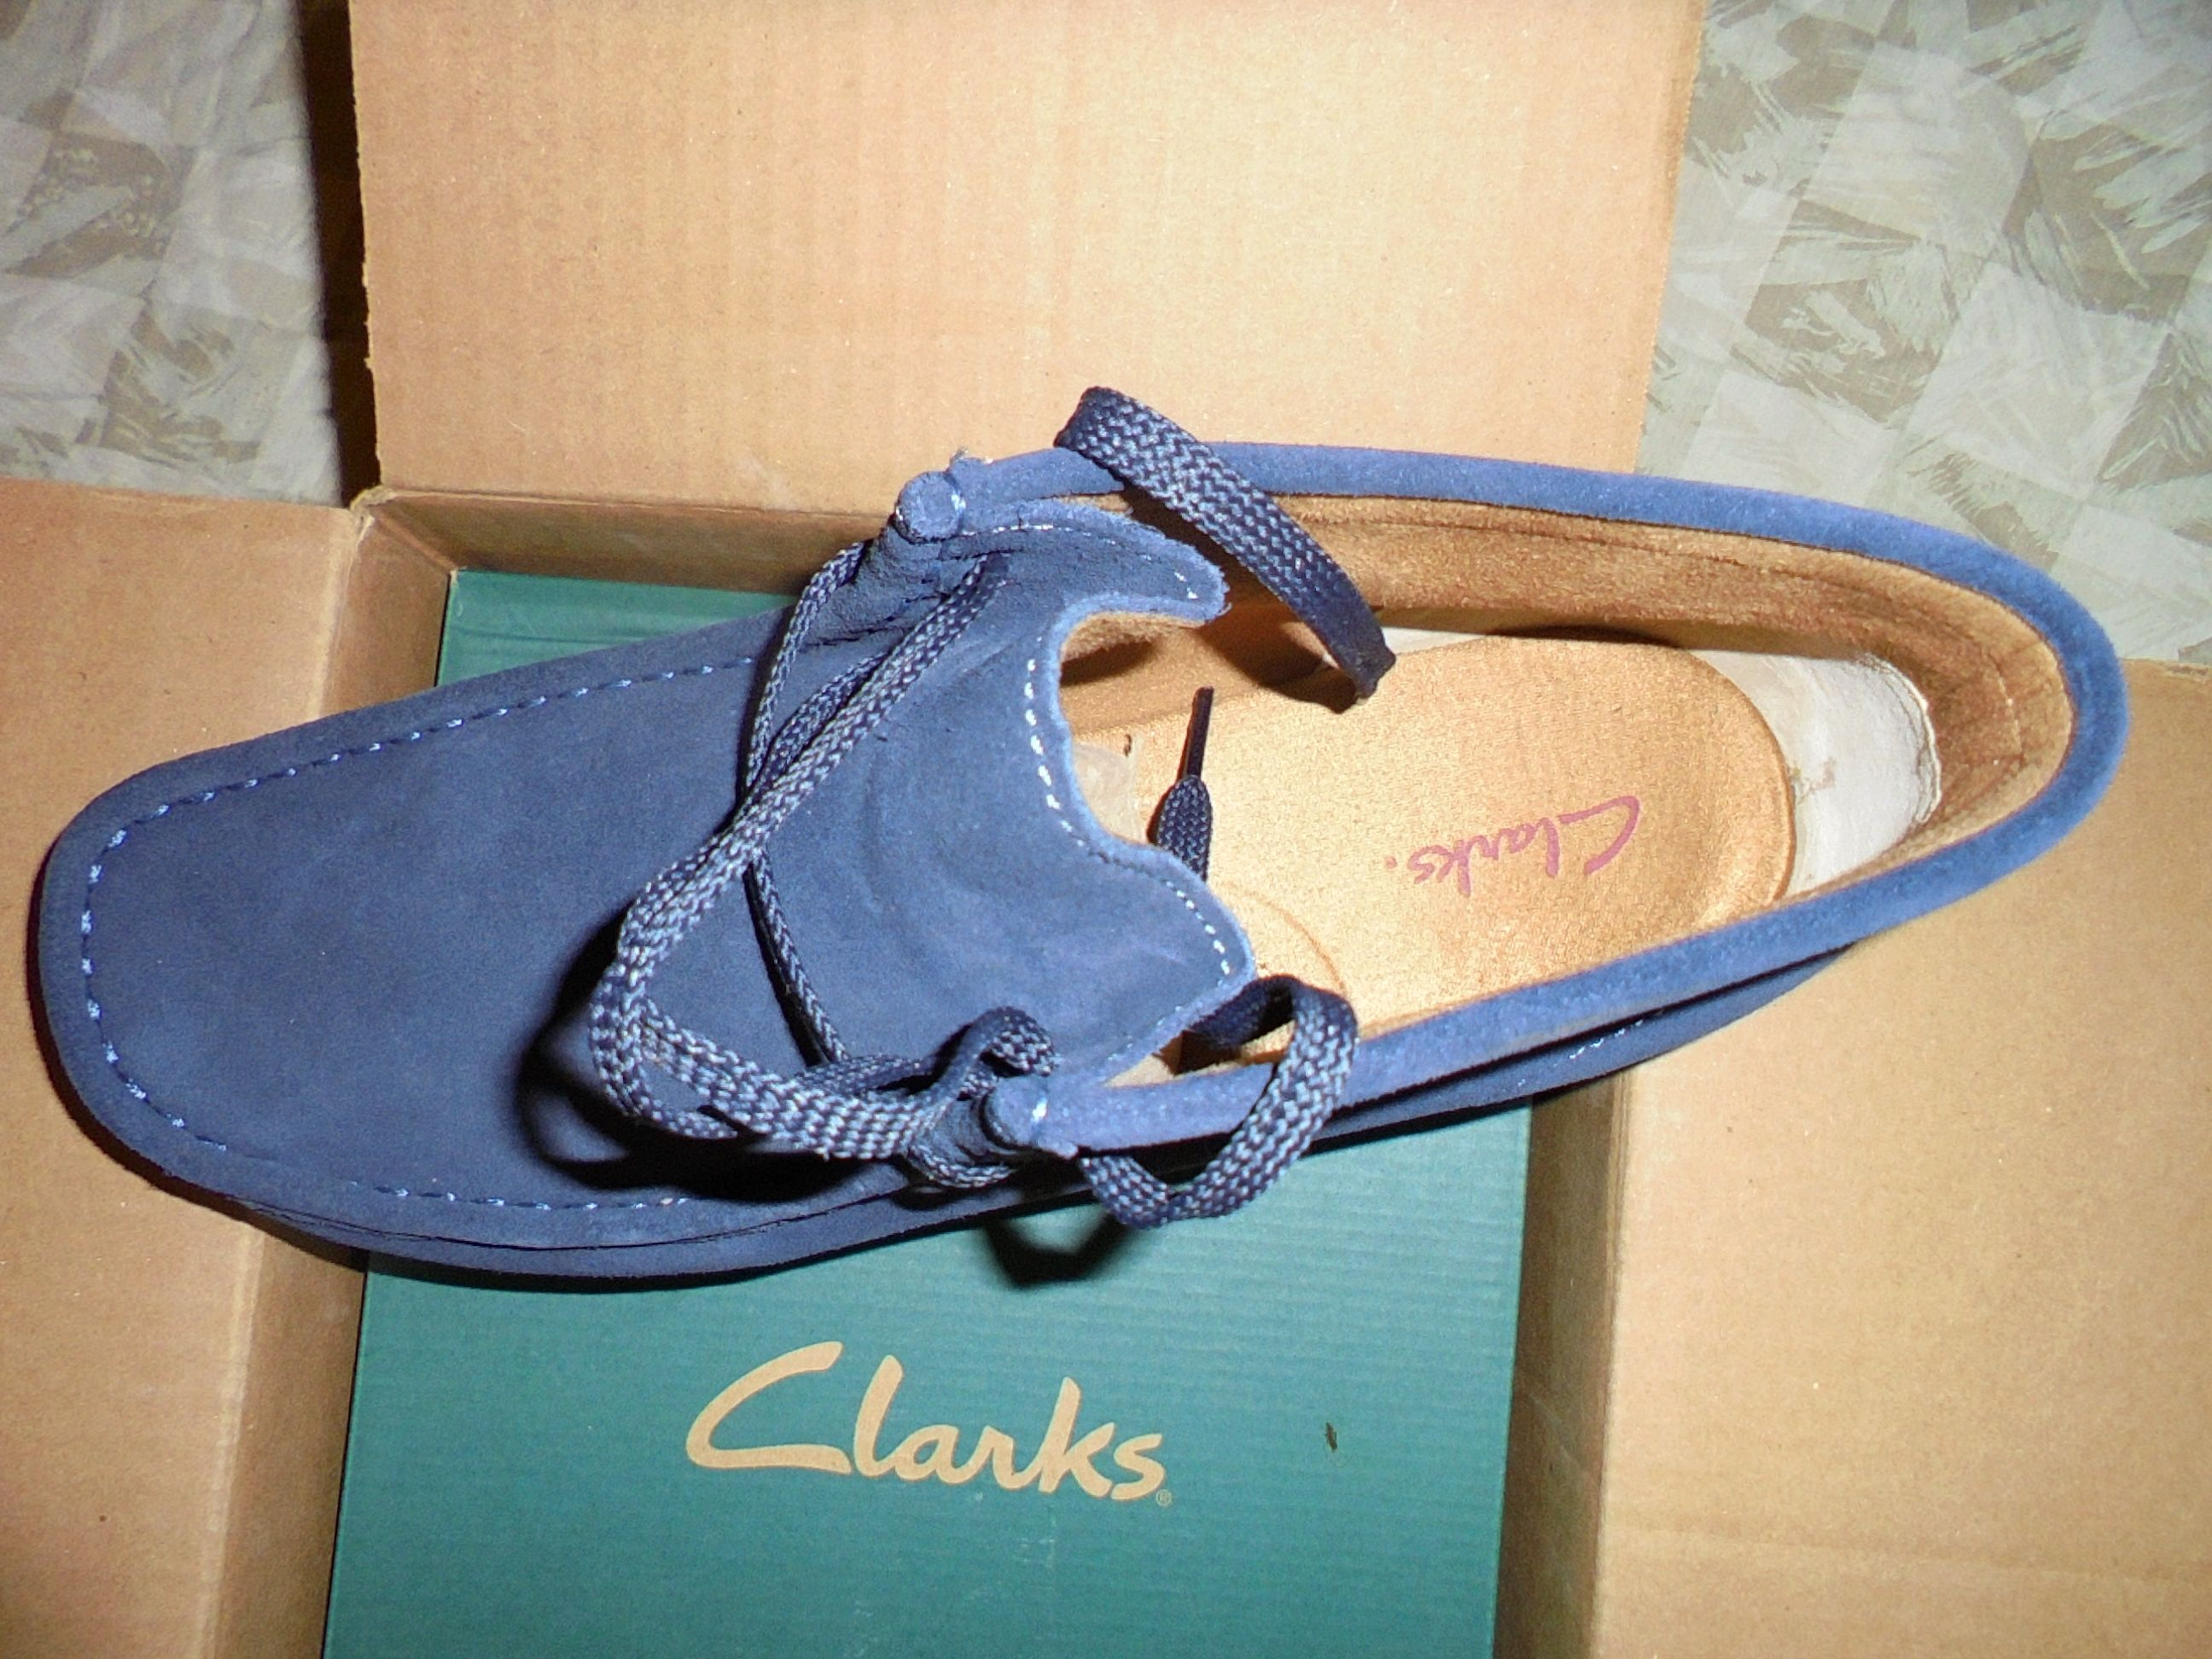 #NavyBlueSuede #Padmores by #ClarksWallabeeUSA - www.drewrynewsnetwork.com/forum/reviews